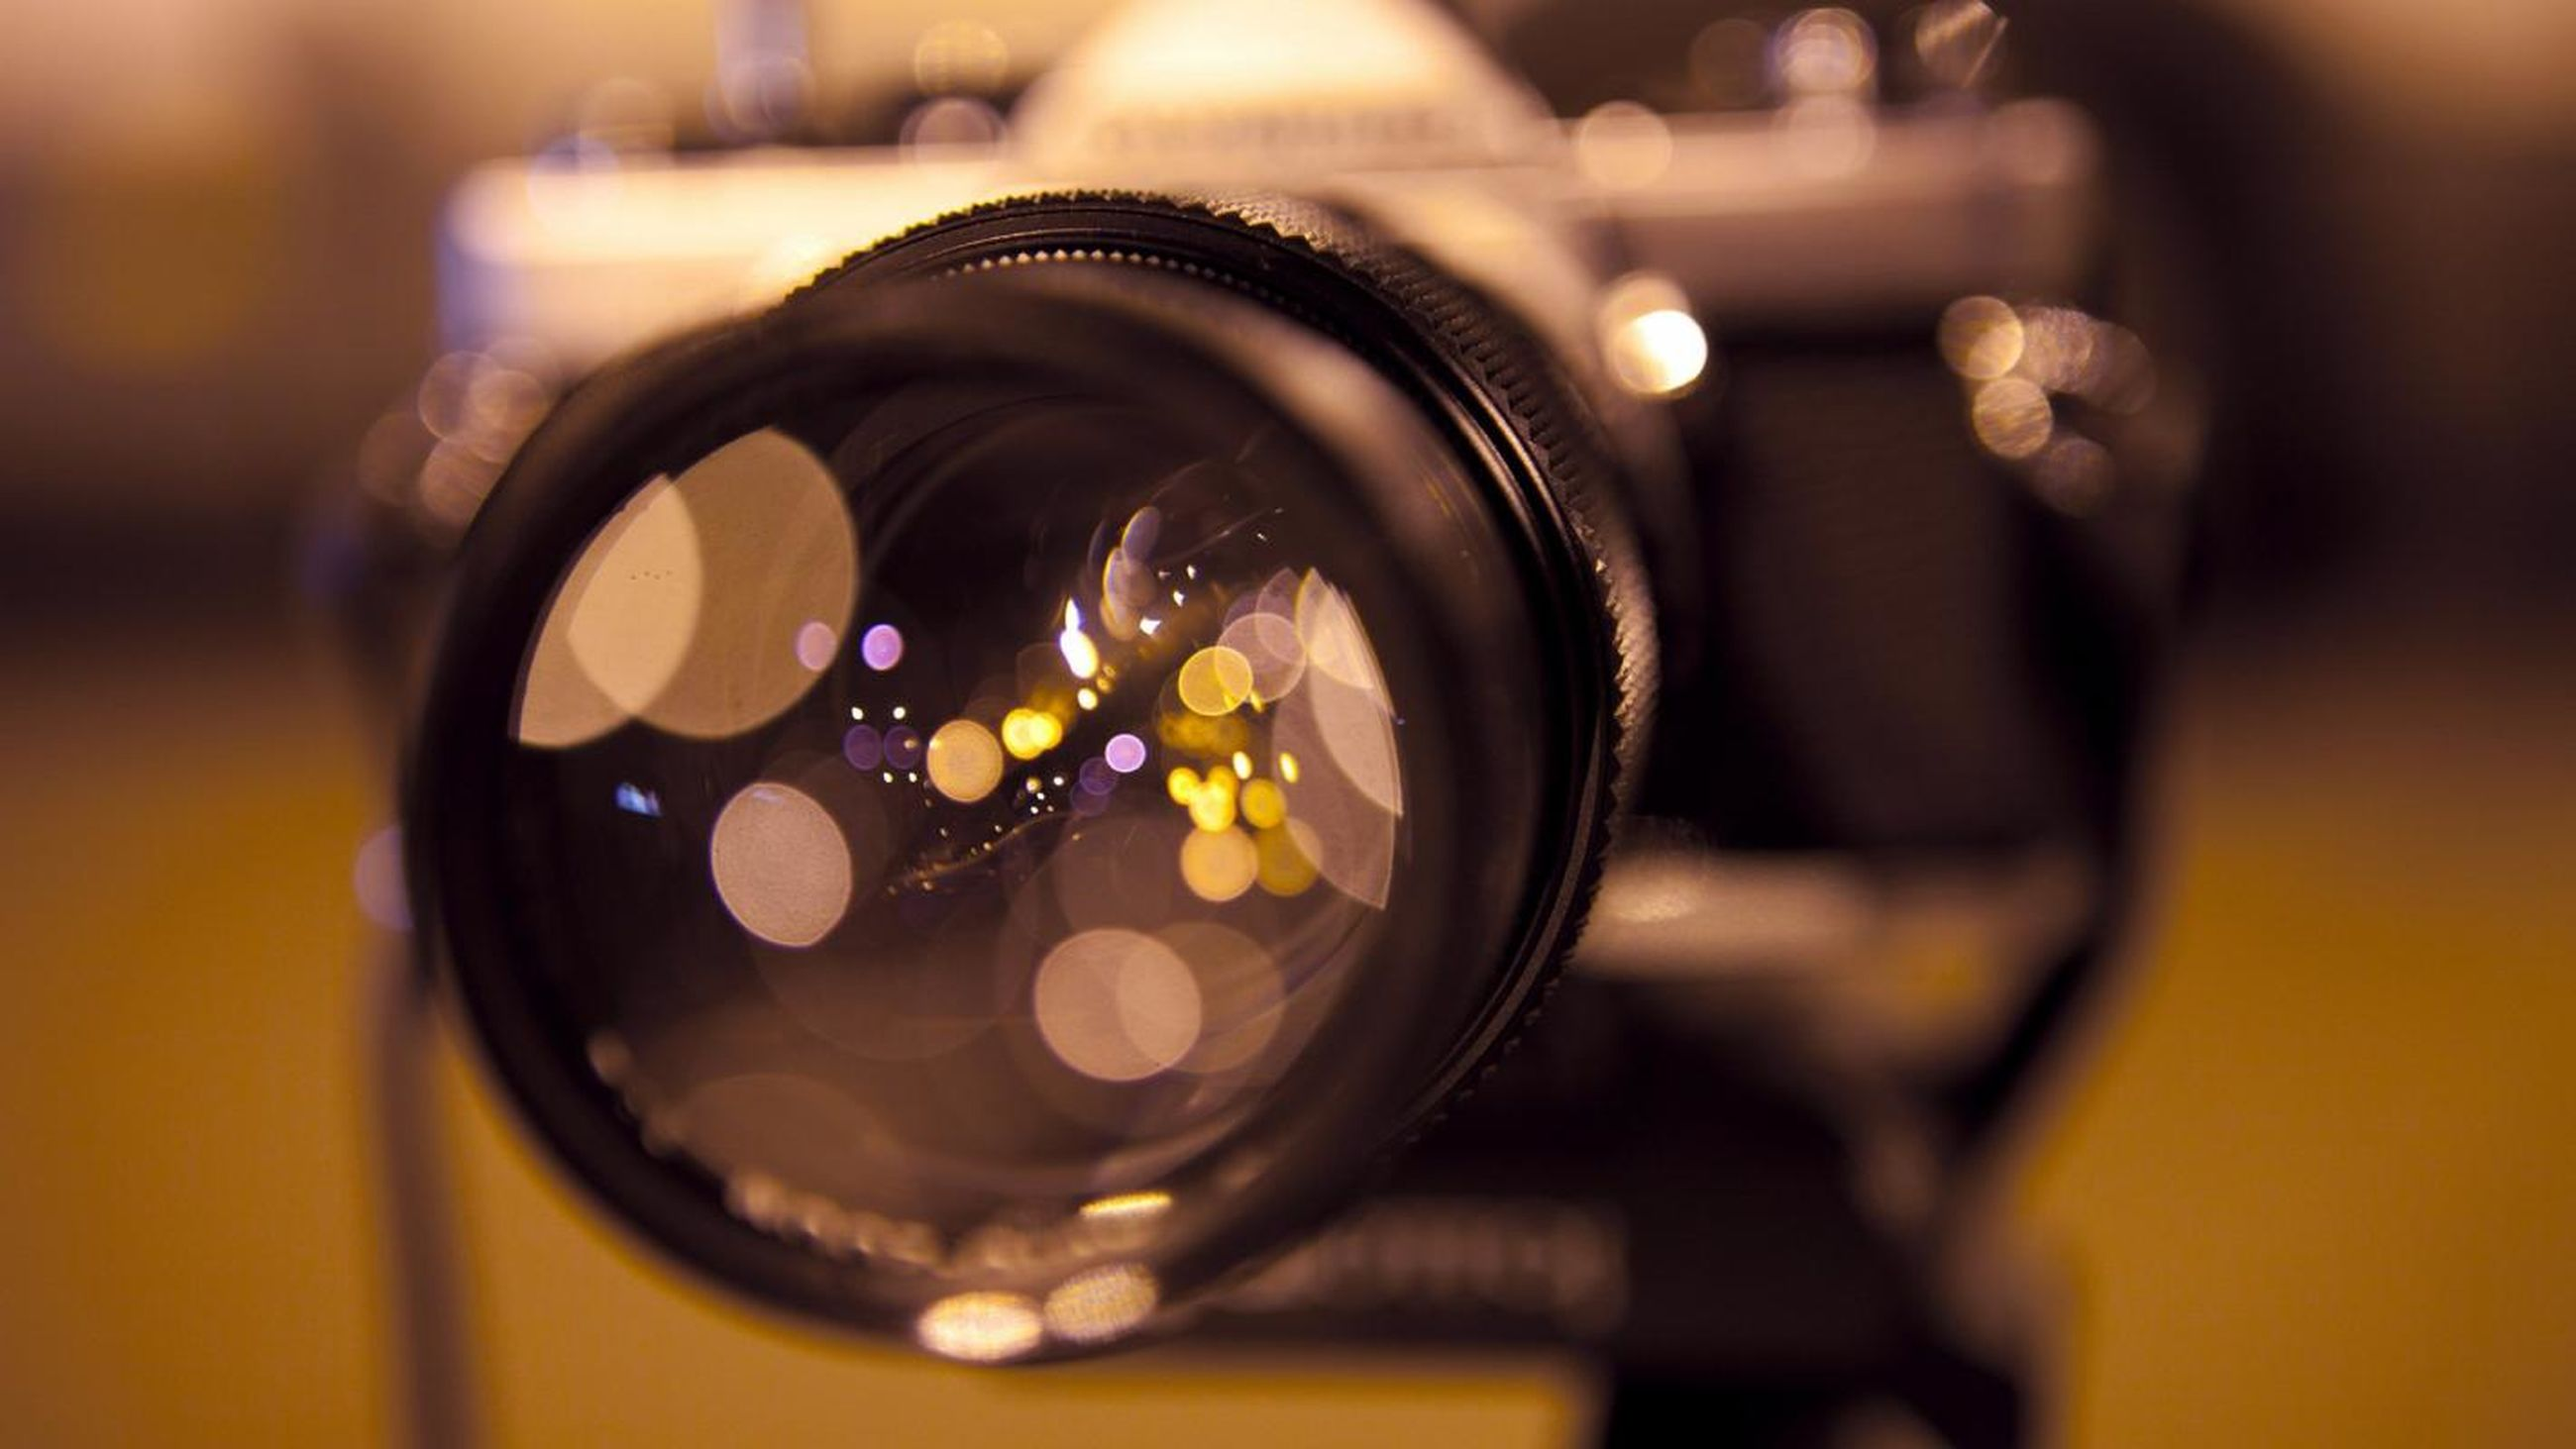 indoors, focus on foreground, close-up, selective focus, reflection, photography themes, glass - material, table, still life, circle, part of, technology, camera - photographic equipment, single object, shiny, land vehicle, cropped, holding